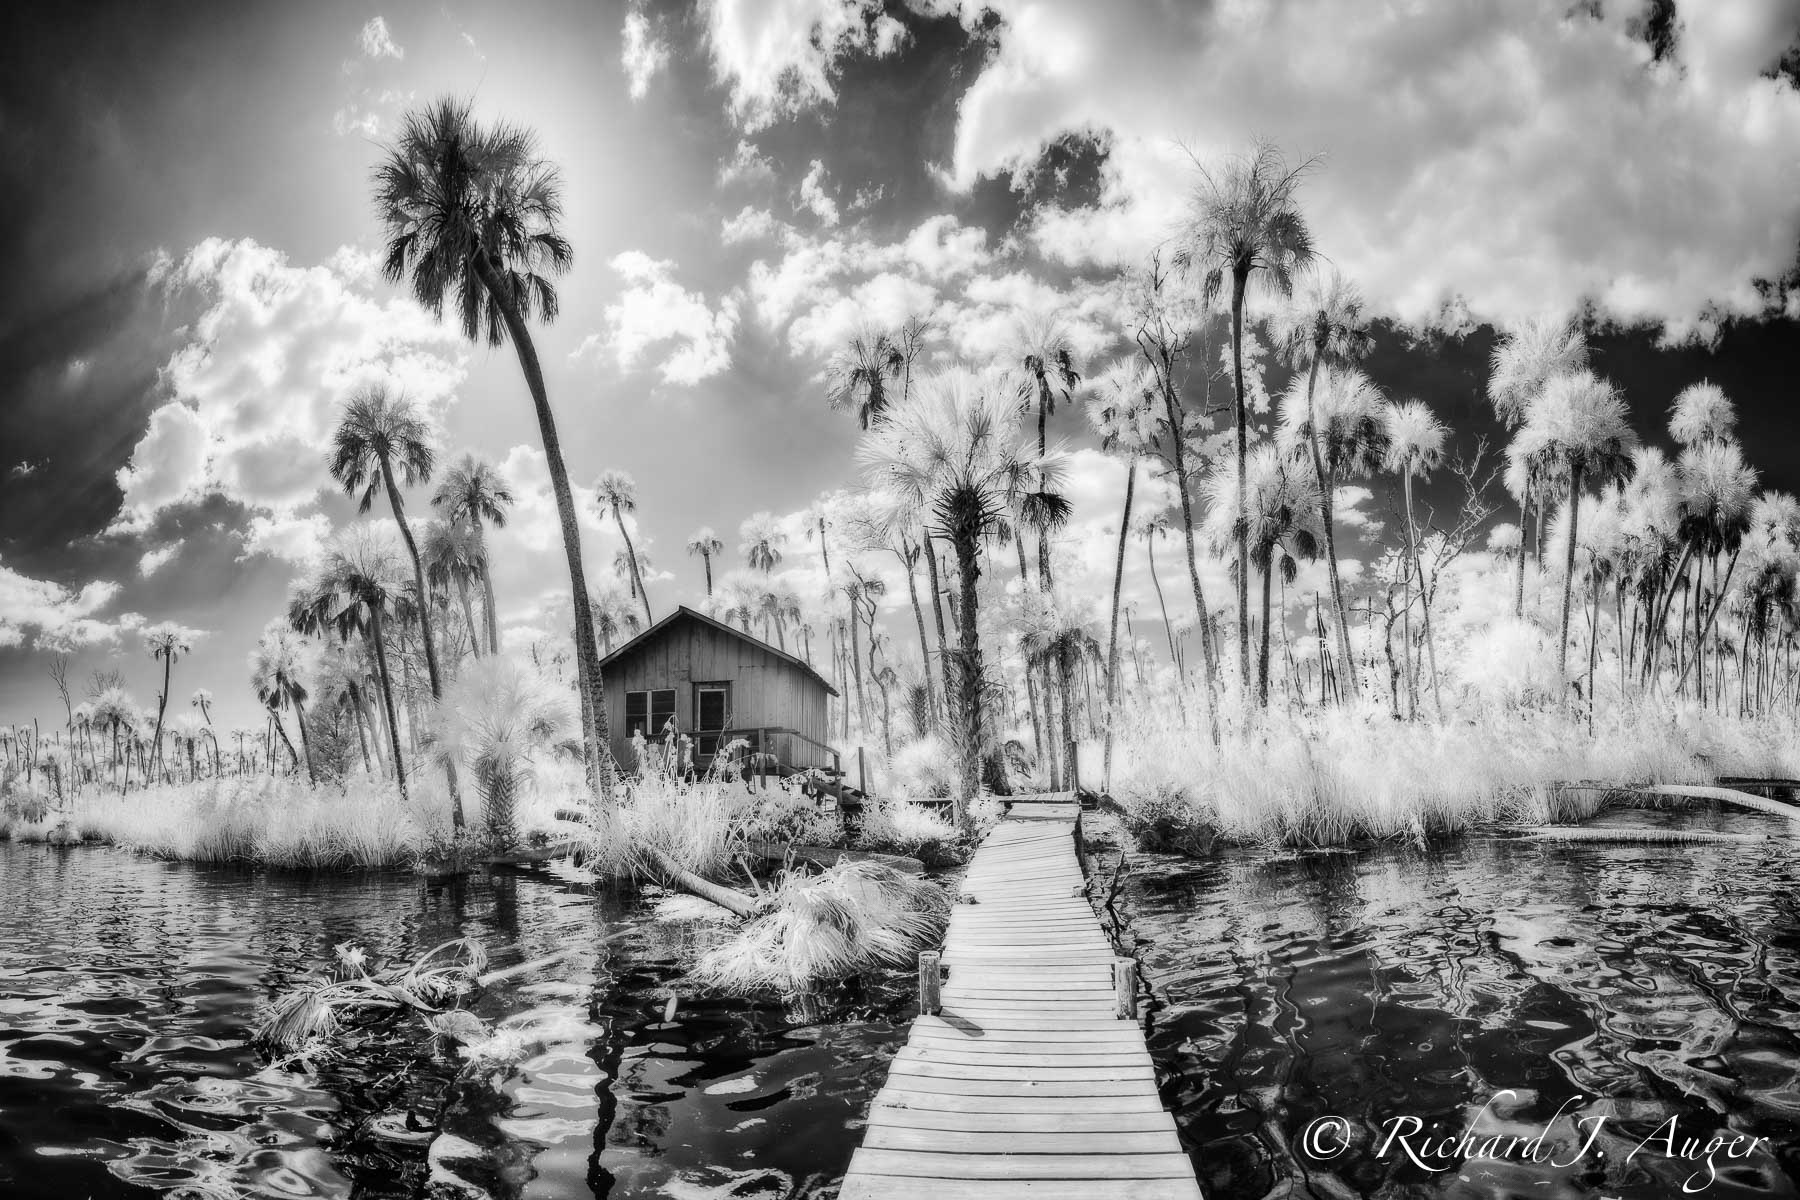 Chassahowitzka river chaz florida swamp palm trees fishing shack stormy